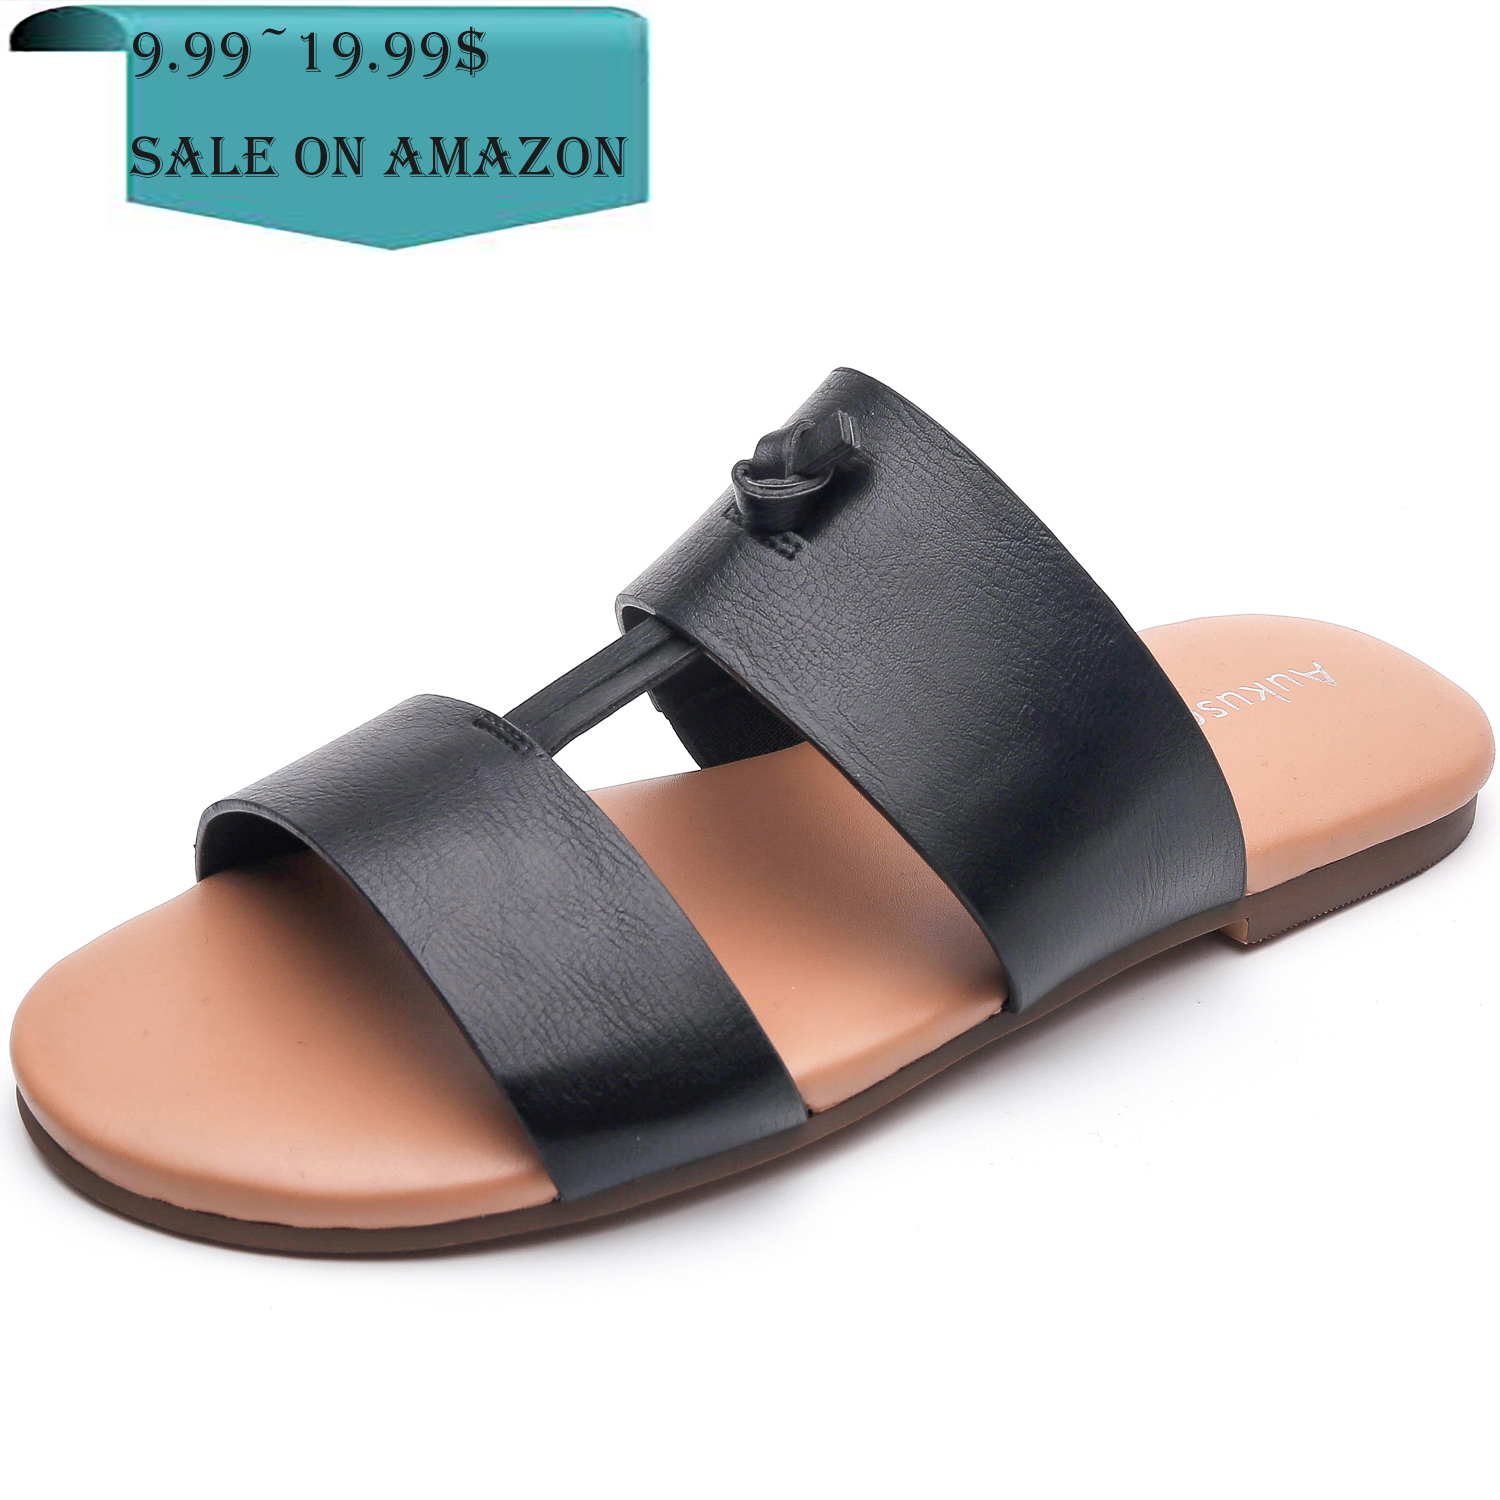 a2cc5993a87 US  29.99 - Aukusor Women s Wide Flat Sandals - Slide Summer Shoes with Two  Straps and Memory Foam Insole - www.luoika-us.com